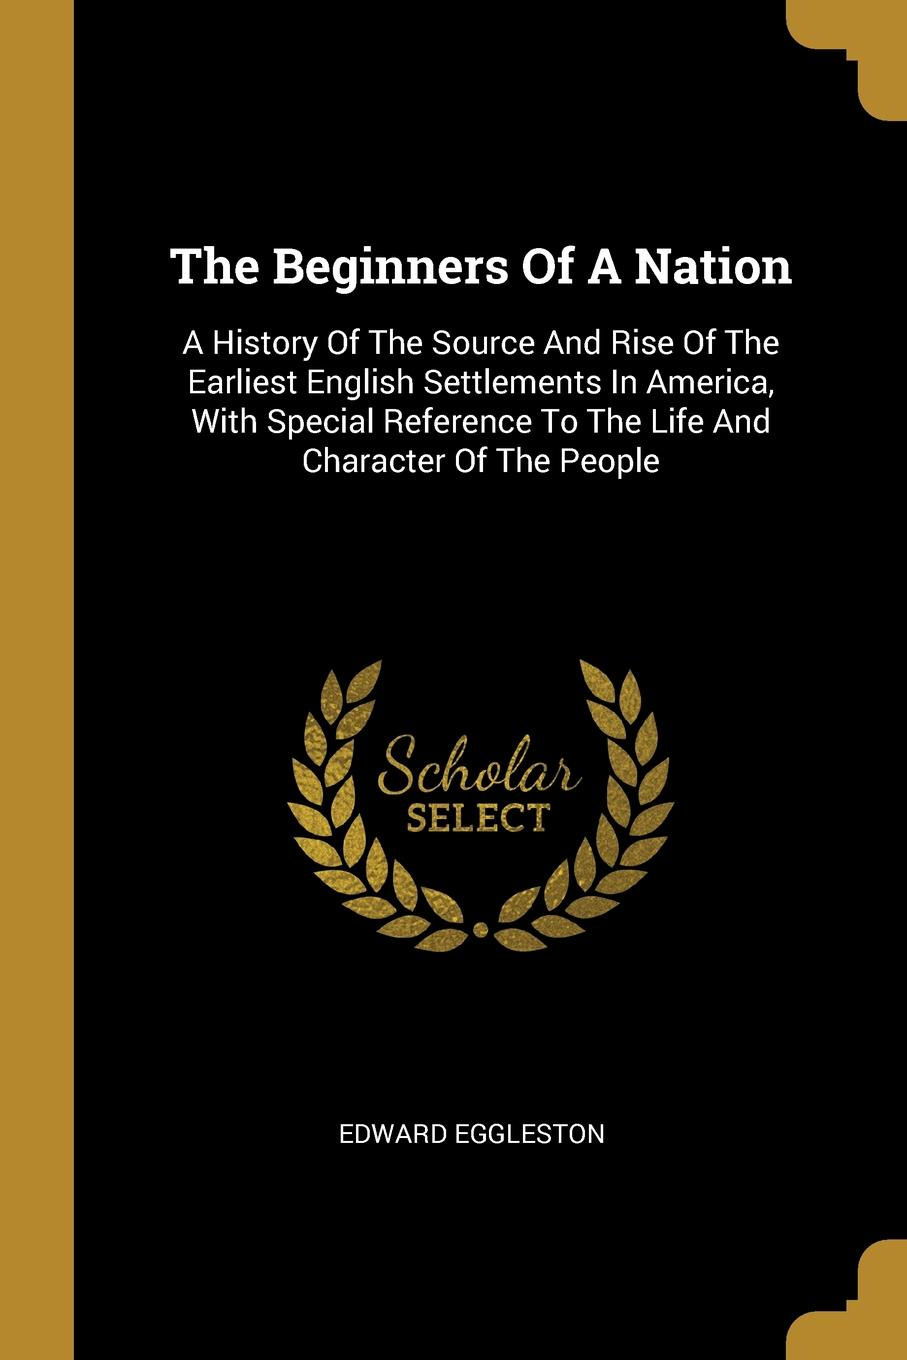 The Beginners Of A Nation. A History Of The Source And Rise Of The Earliest English Settlements In America, With Special Reference To The Life And Character Of The People